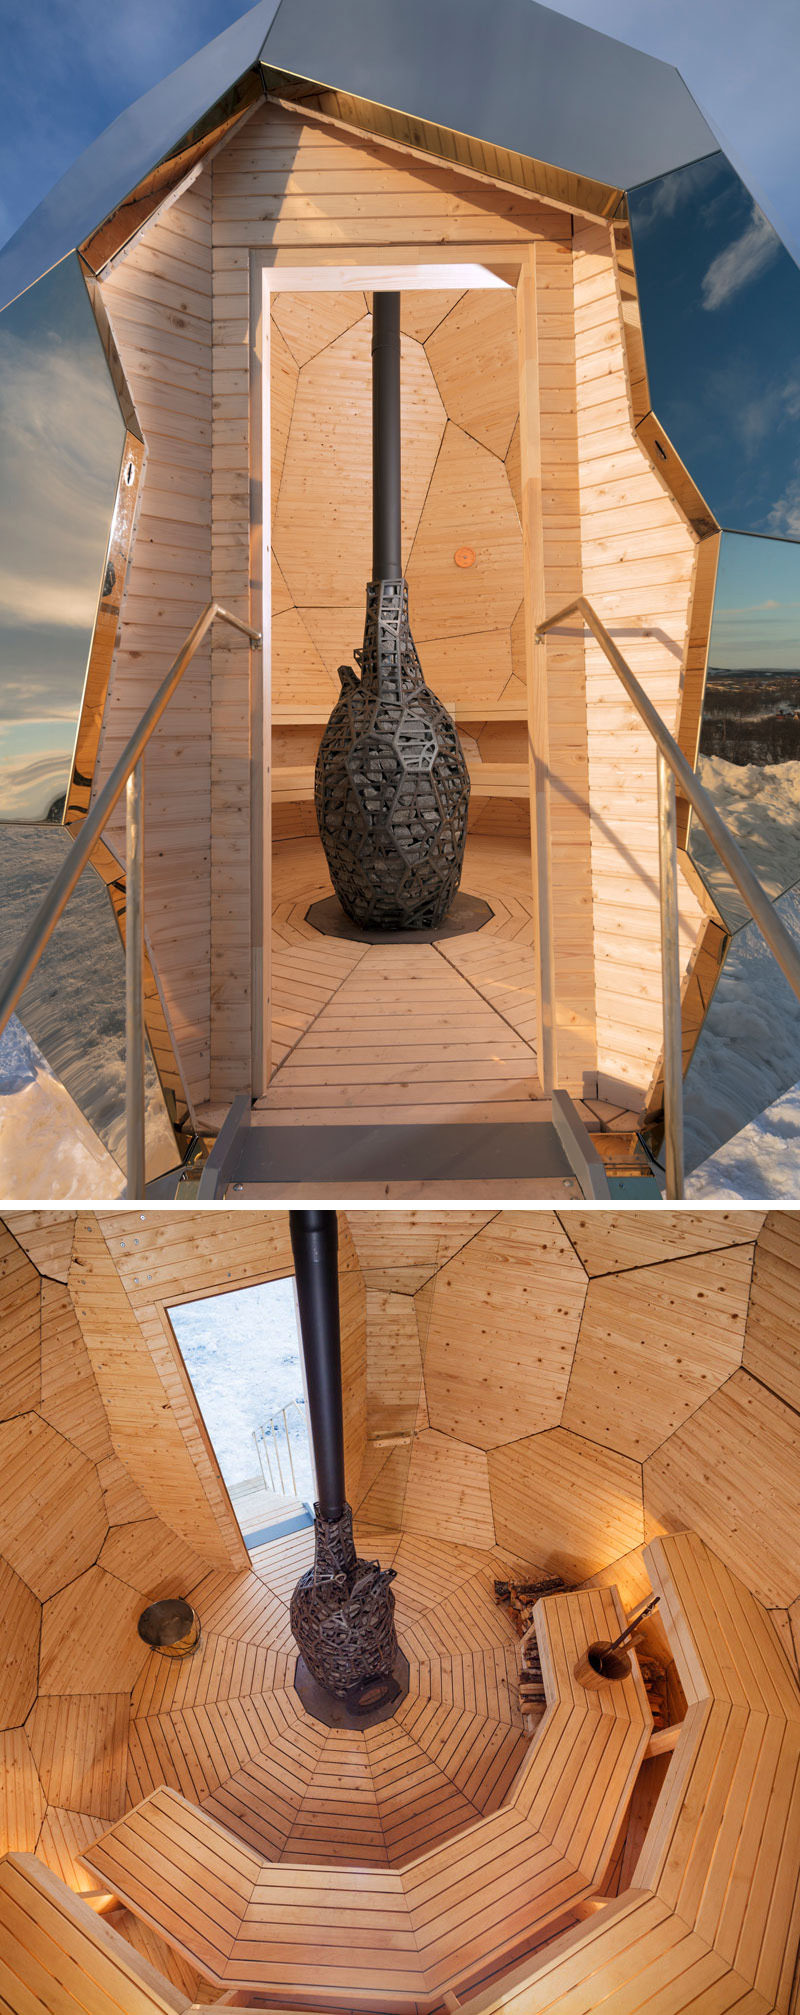 Inside this egg shaped sauna, multi-level wood seating with hidden lighting and patterned wood walls surround the fireplace. The fascinating egg can accommodate up to eight people at once.